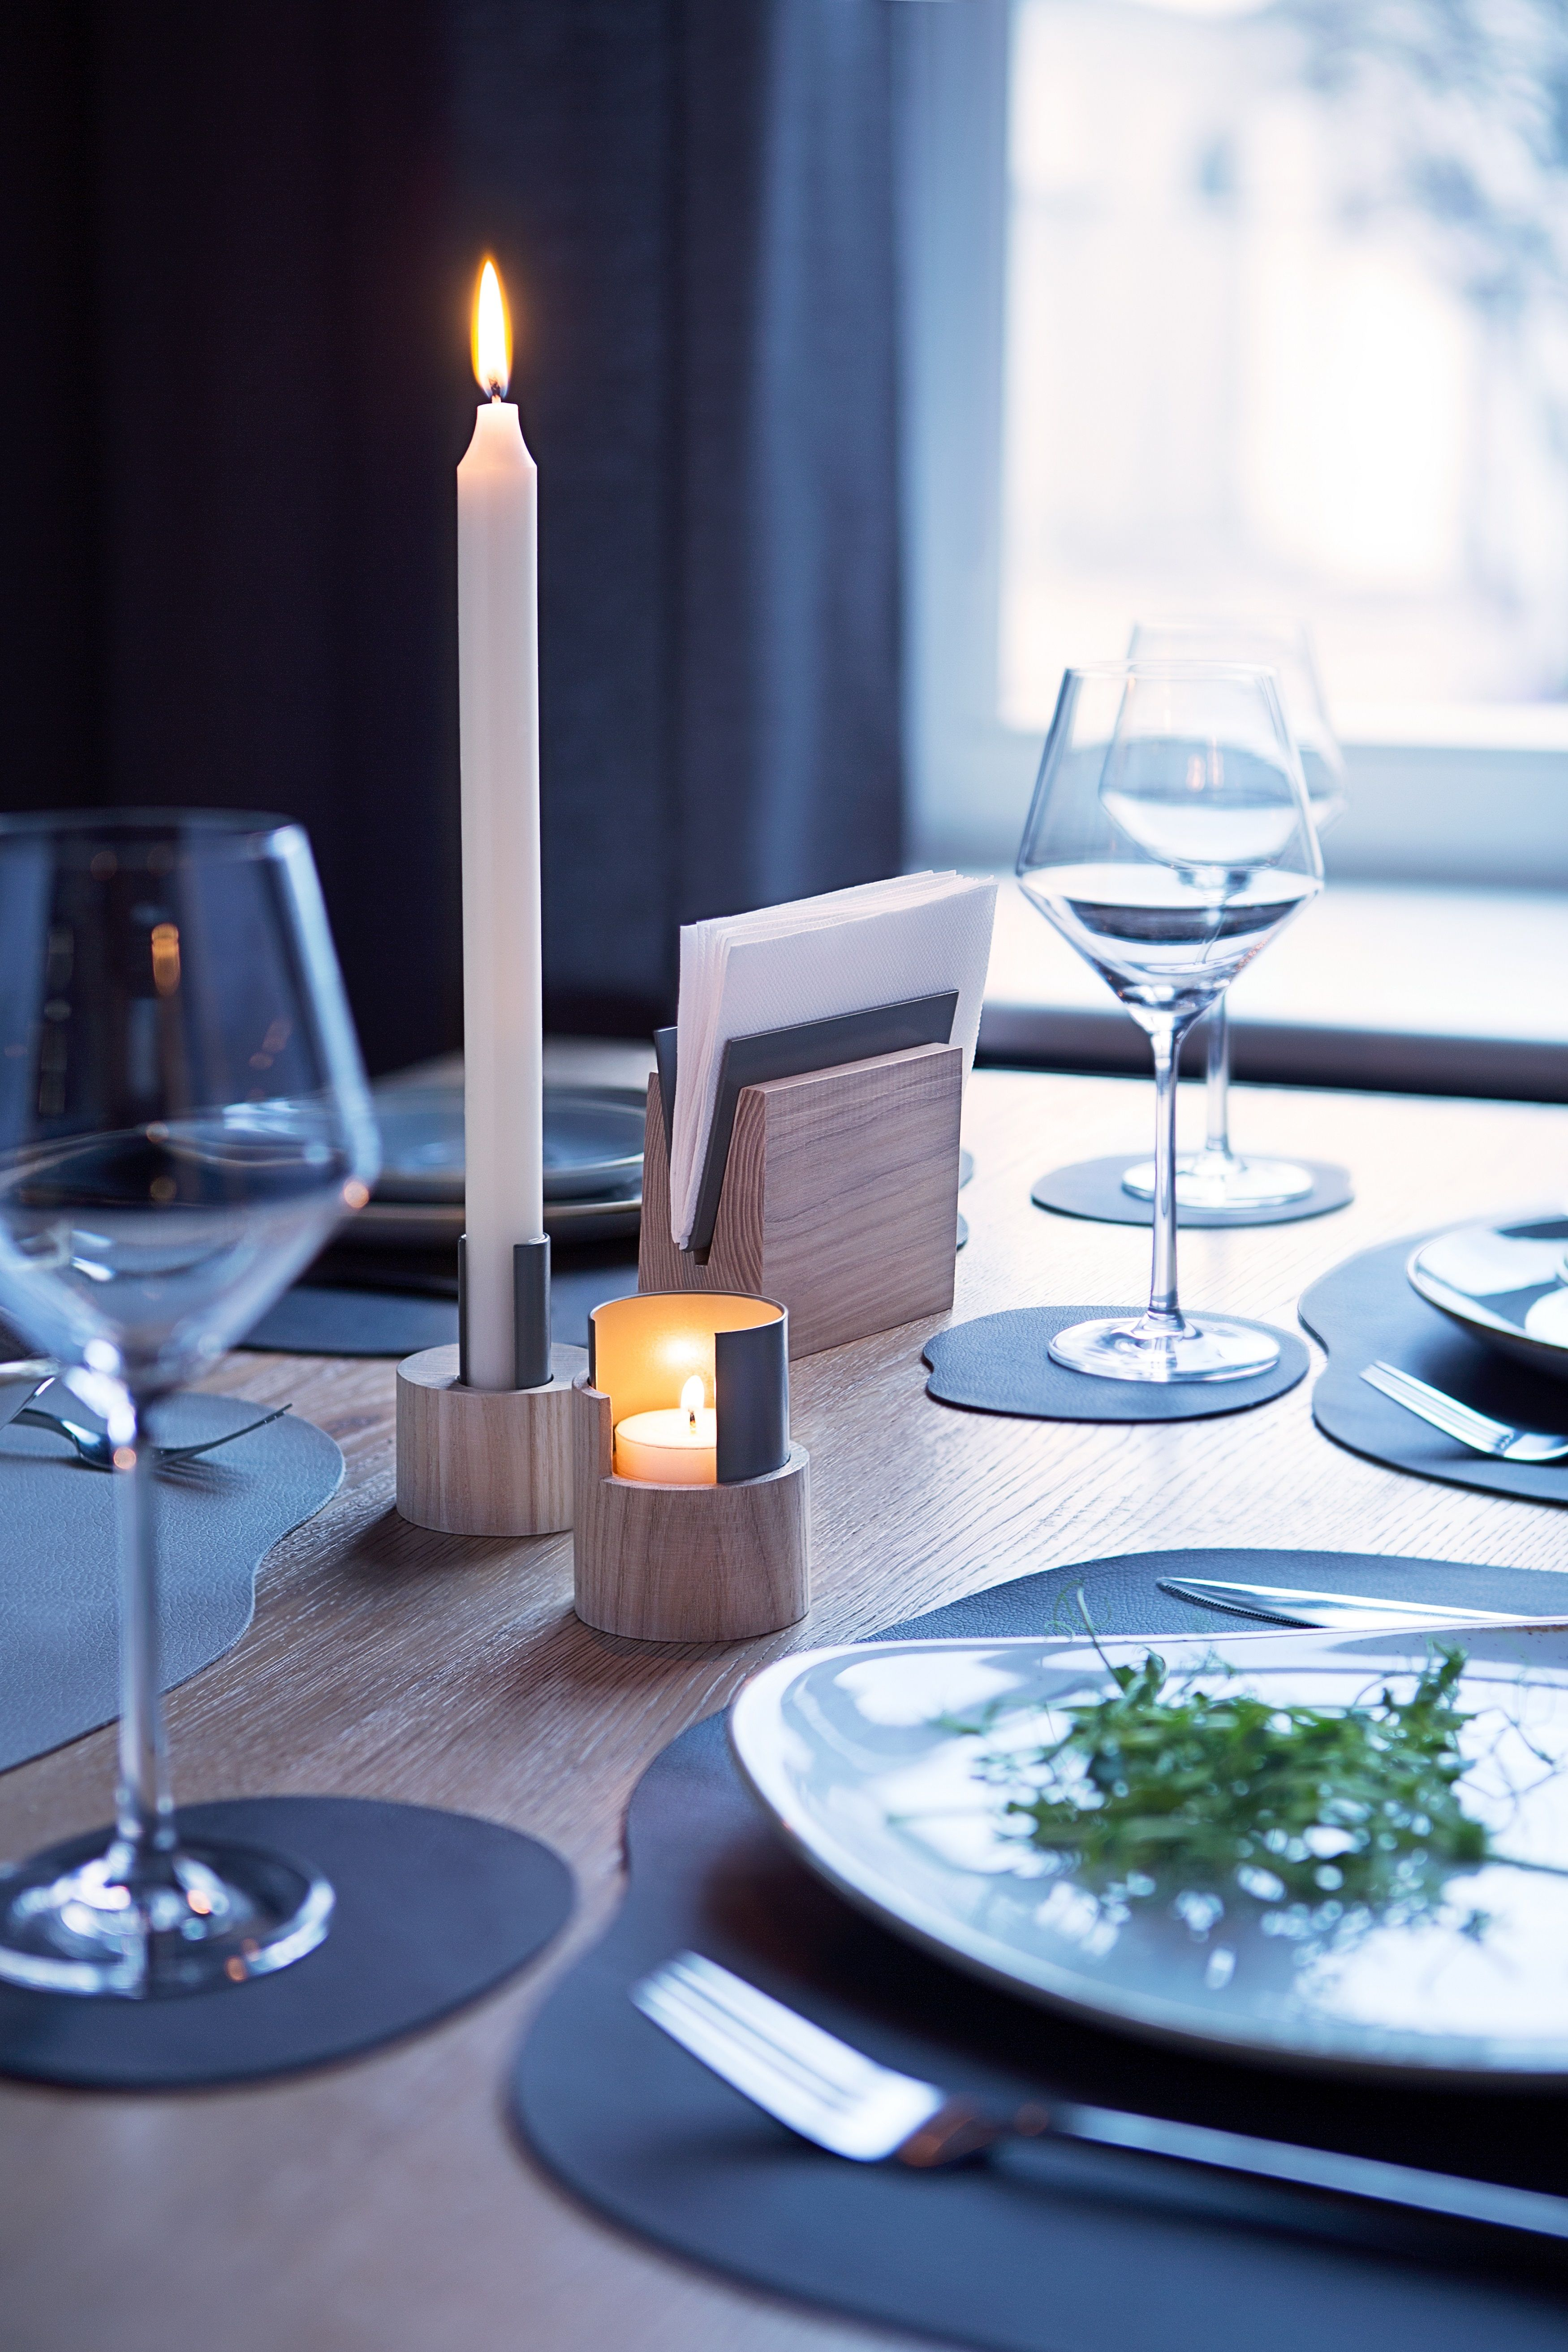 Restaurant Table Setting Table Mats And Candle Holders RH - Restaurant candle holders for table